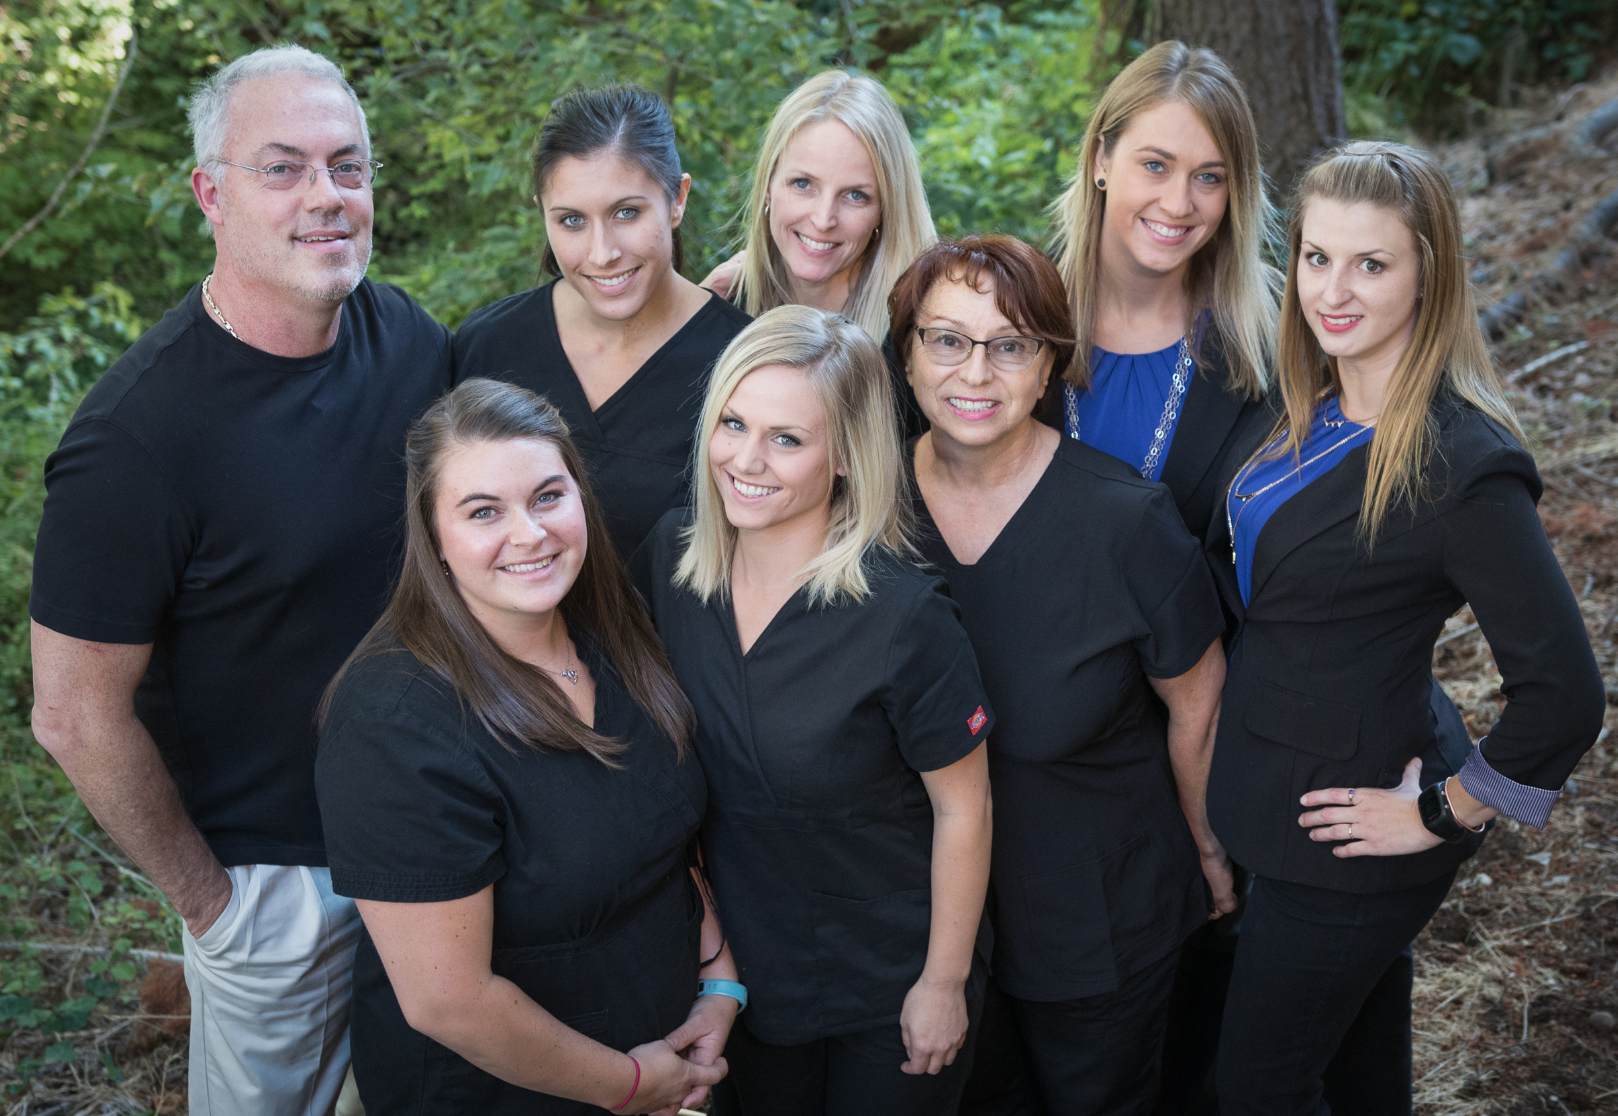 Dr. David Kavanagh and his team of dental staff